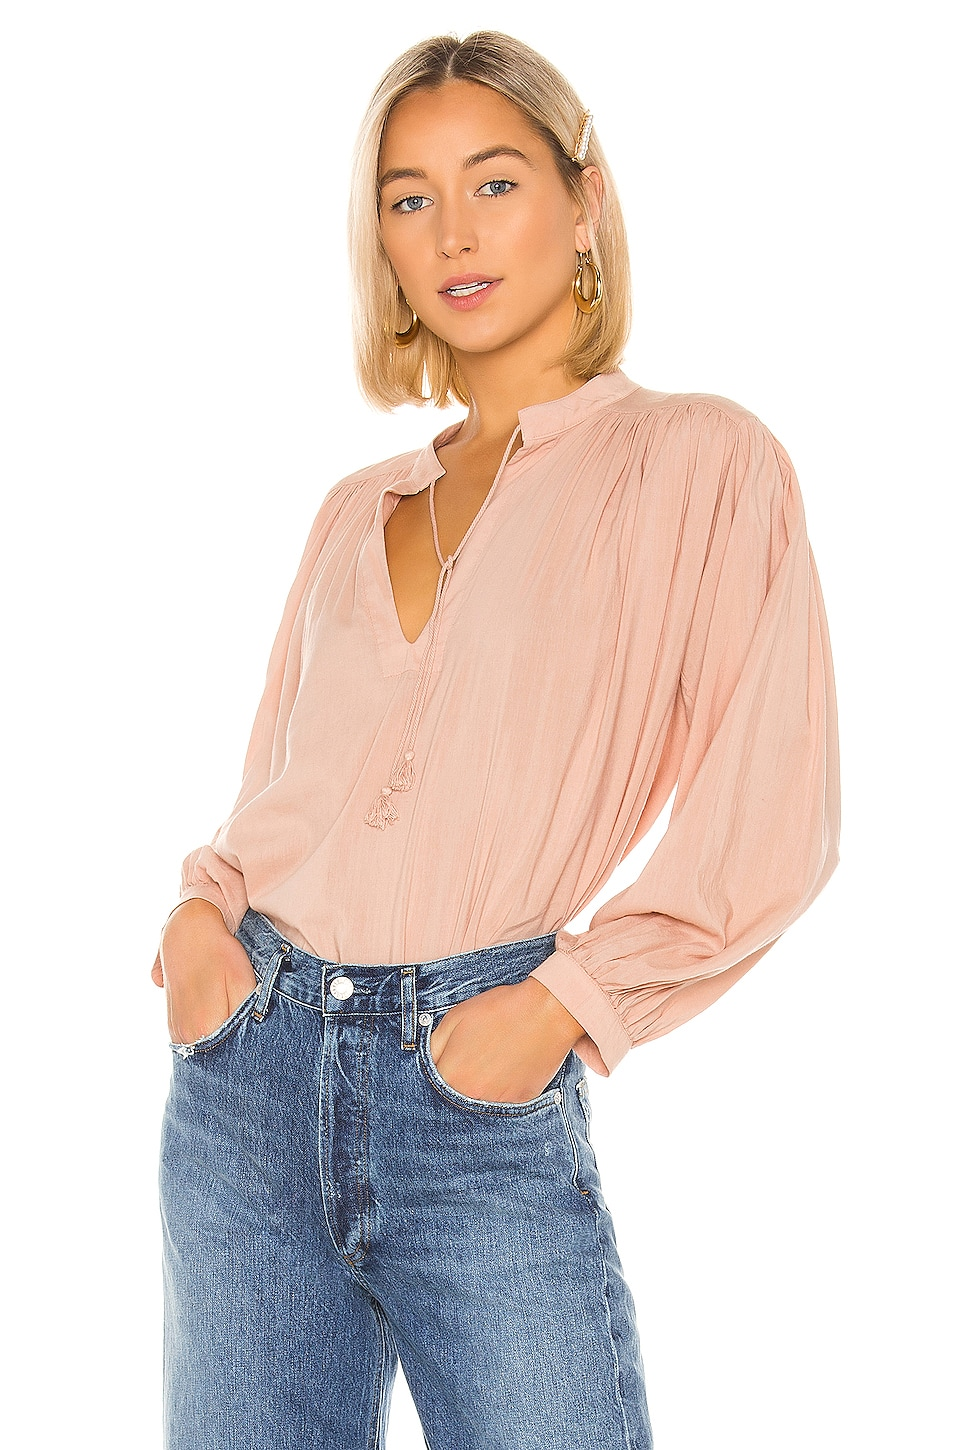 Birds of Paradis by Trovata Colette Long Sleeve Bohemian Blouse in Blush